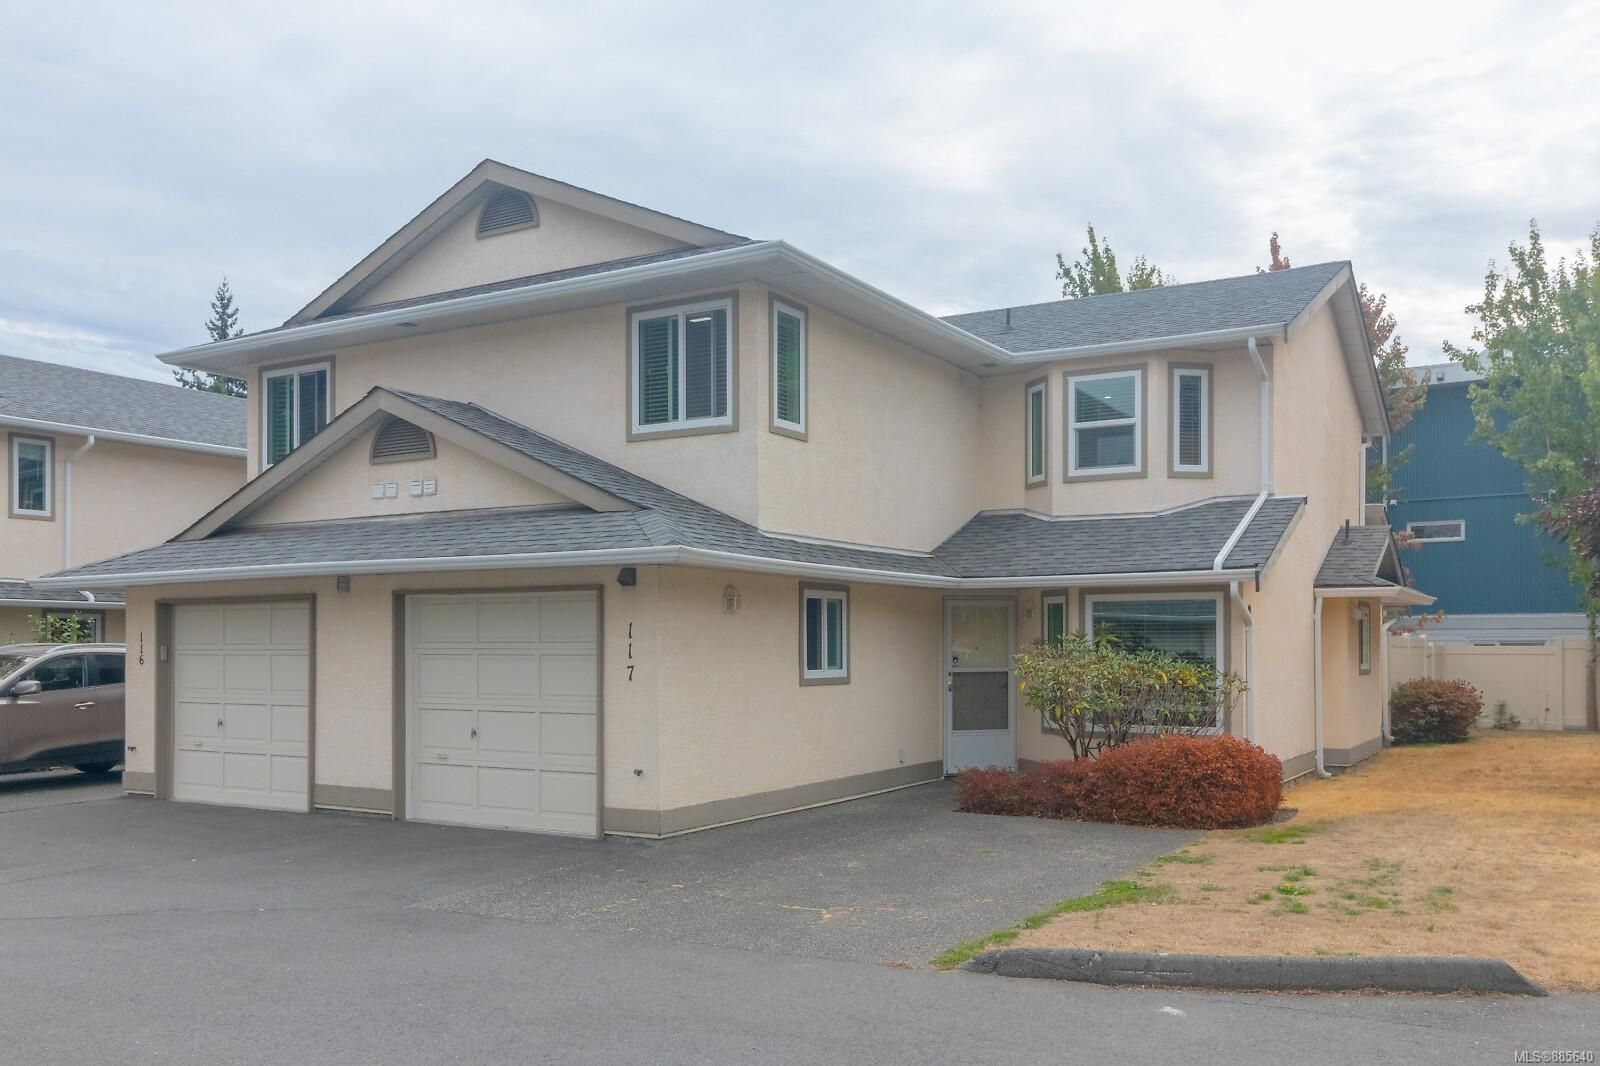 Main Photo: 117 2723 Jacklin Rd in : La Langford Proper Row/Townhouse for sale (Langford)  : MLS®# 885640